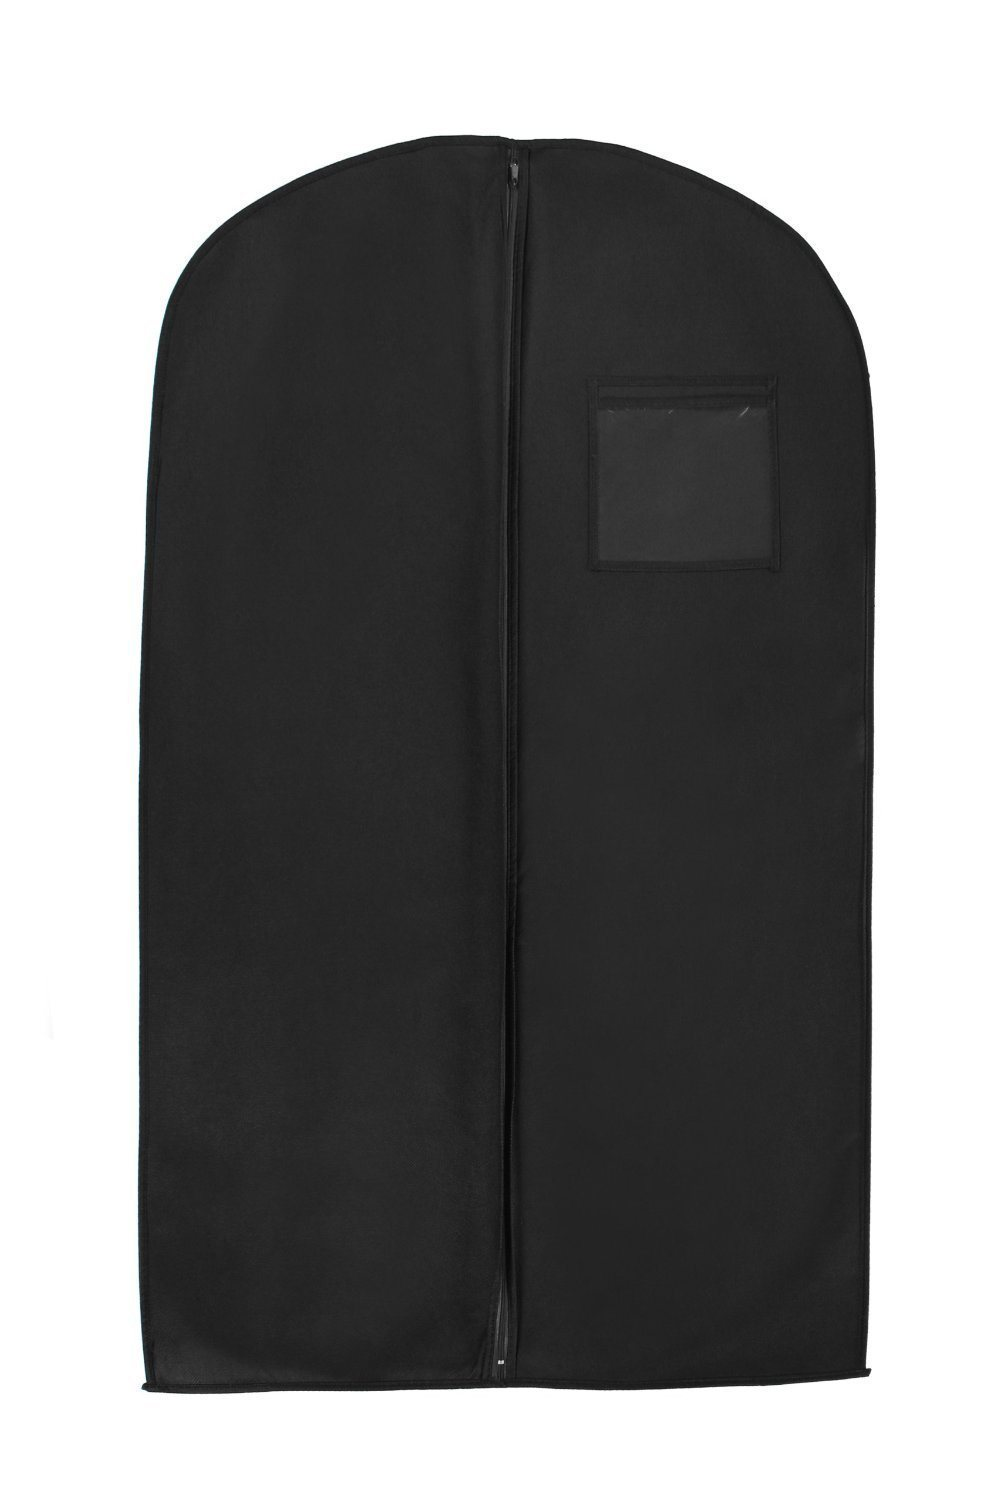 Premium Non-Woven Garment Cover Bags for Protection (FLS-8803)